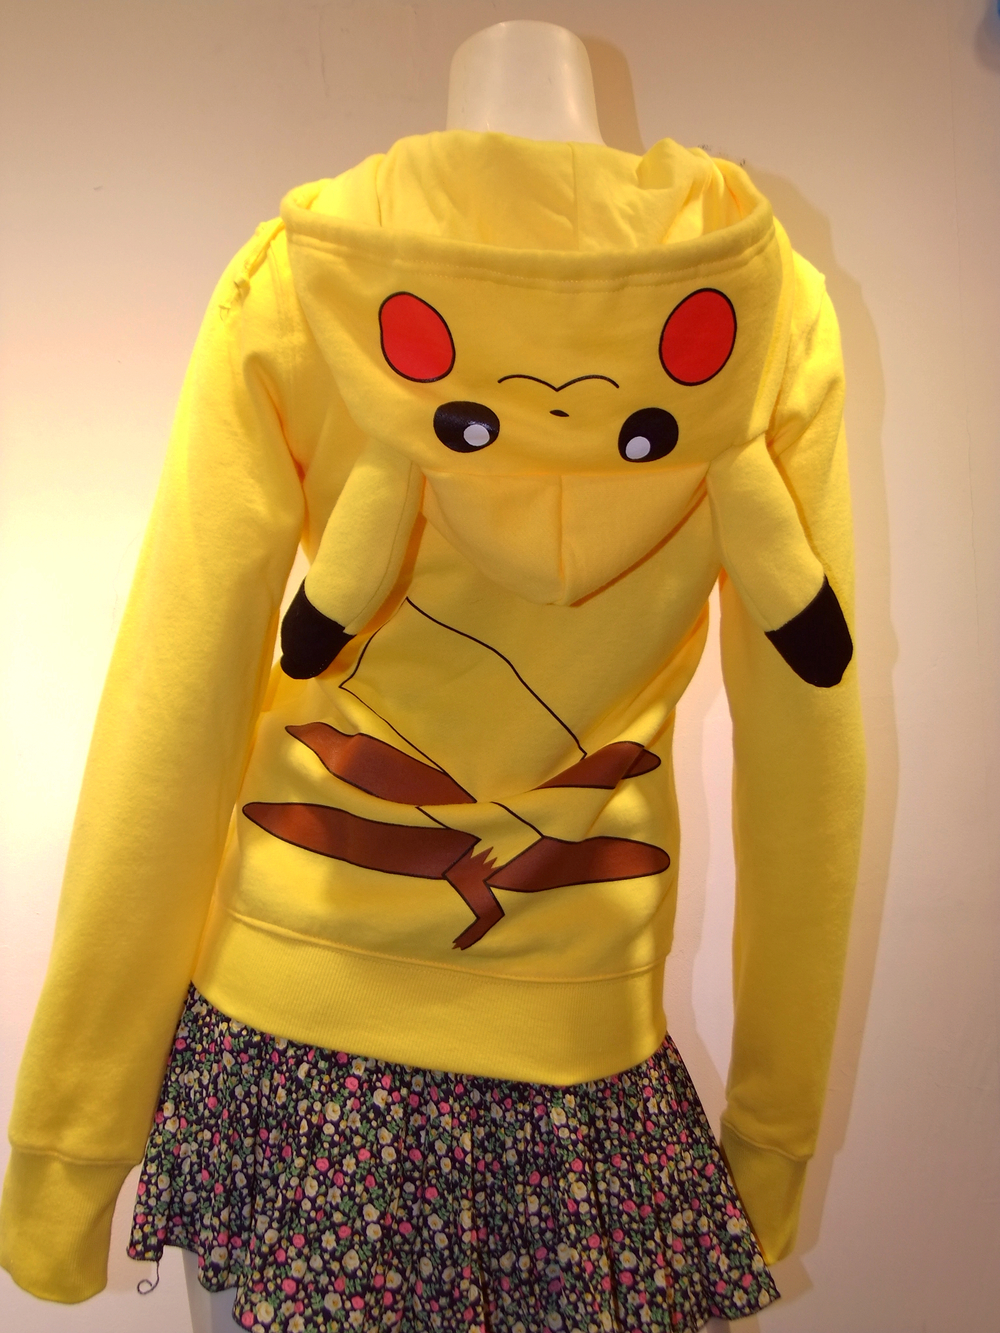 store product Fast Delivery Japan Anime Cool Pokemon Pikachu Hoodie Hoody Cosplay Costume Clothes Yellow for women and